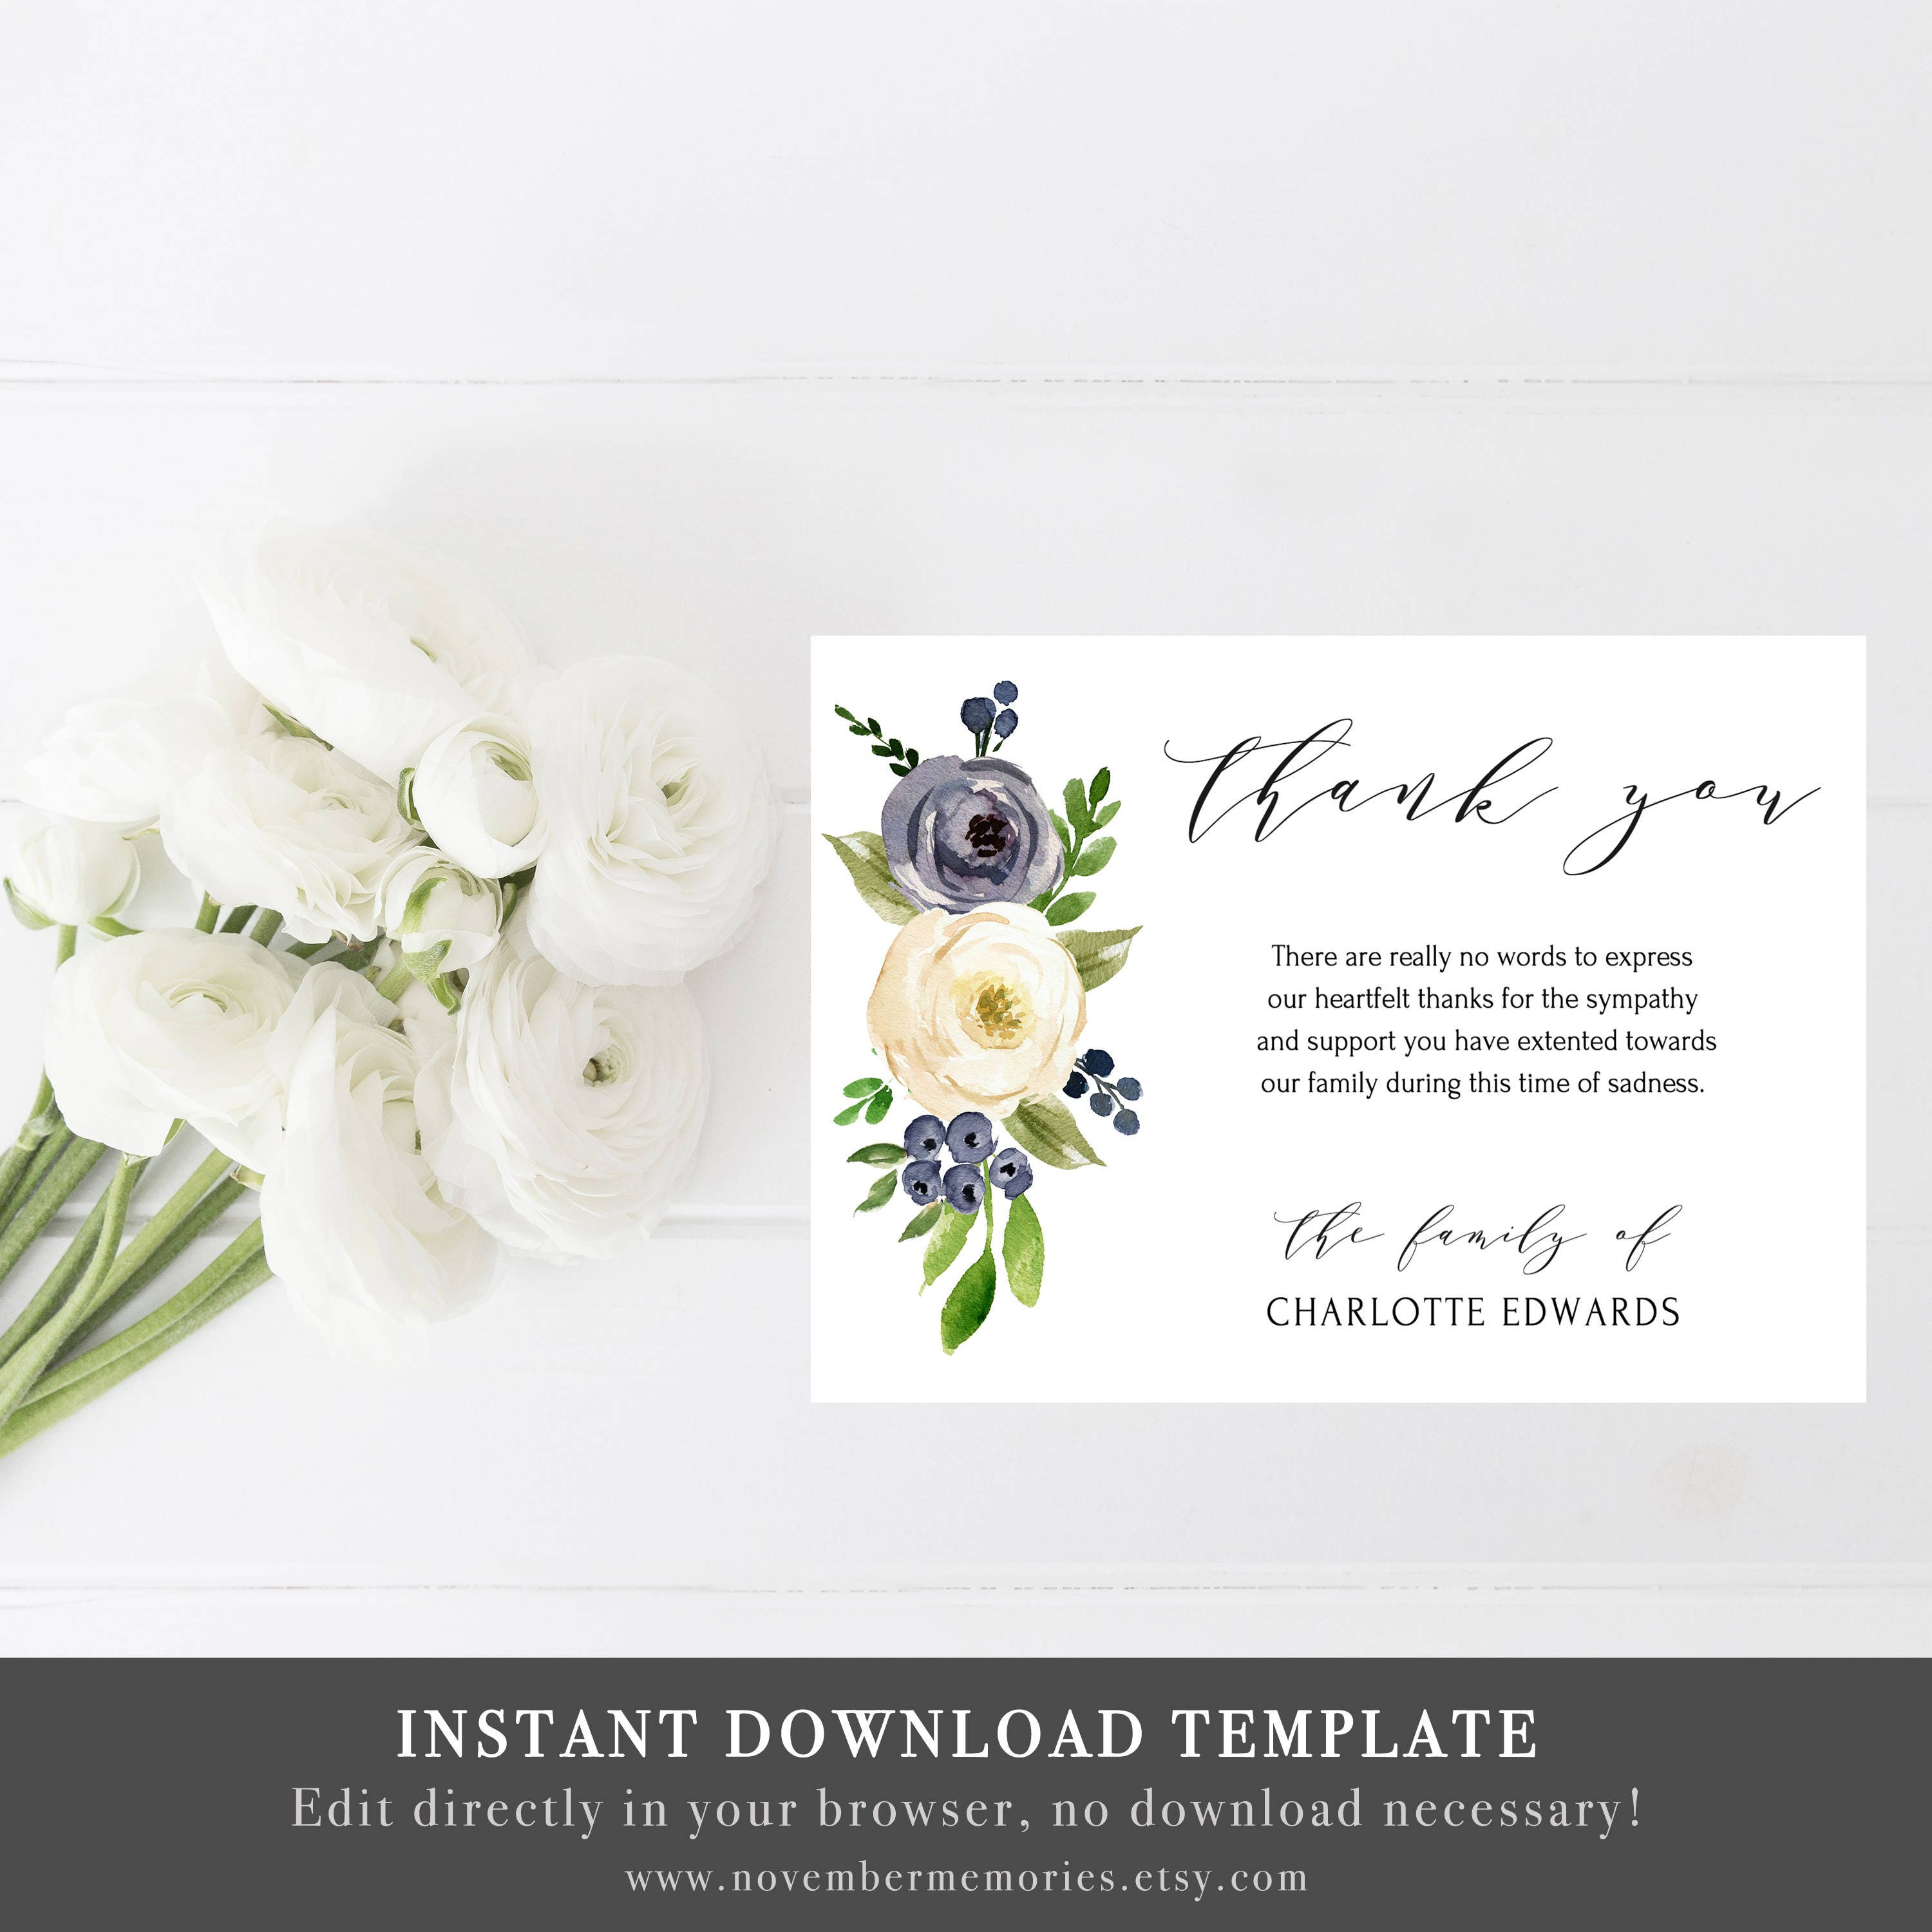 Memorial thank you cards thank you notes funeral card template etsy memorial thank you cards thank you notes funeral card template thank you cards printable bereavement card sympathy acknowledgment editable izmirmasajfo